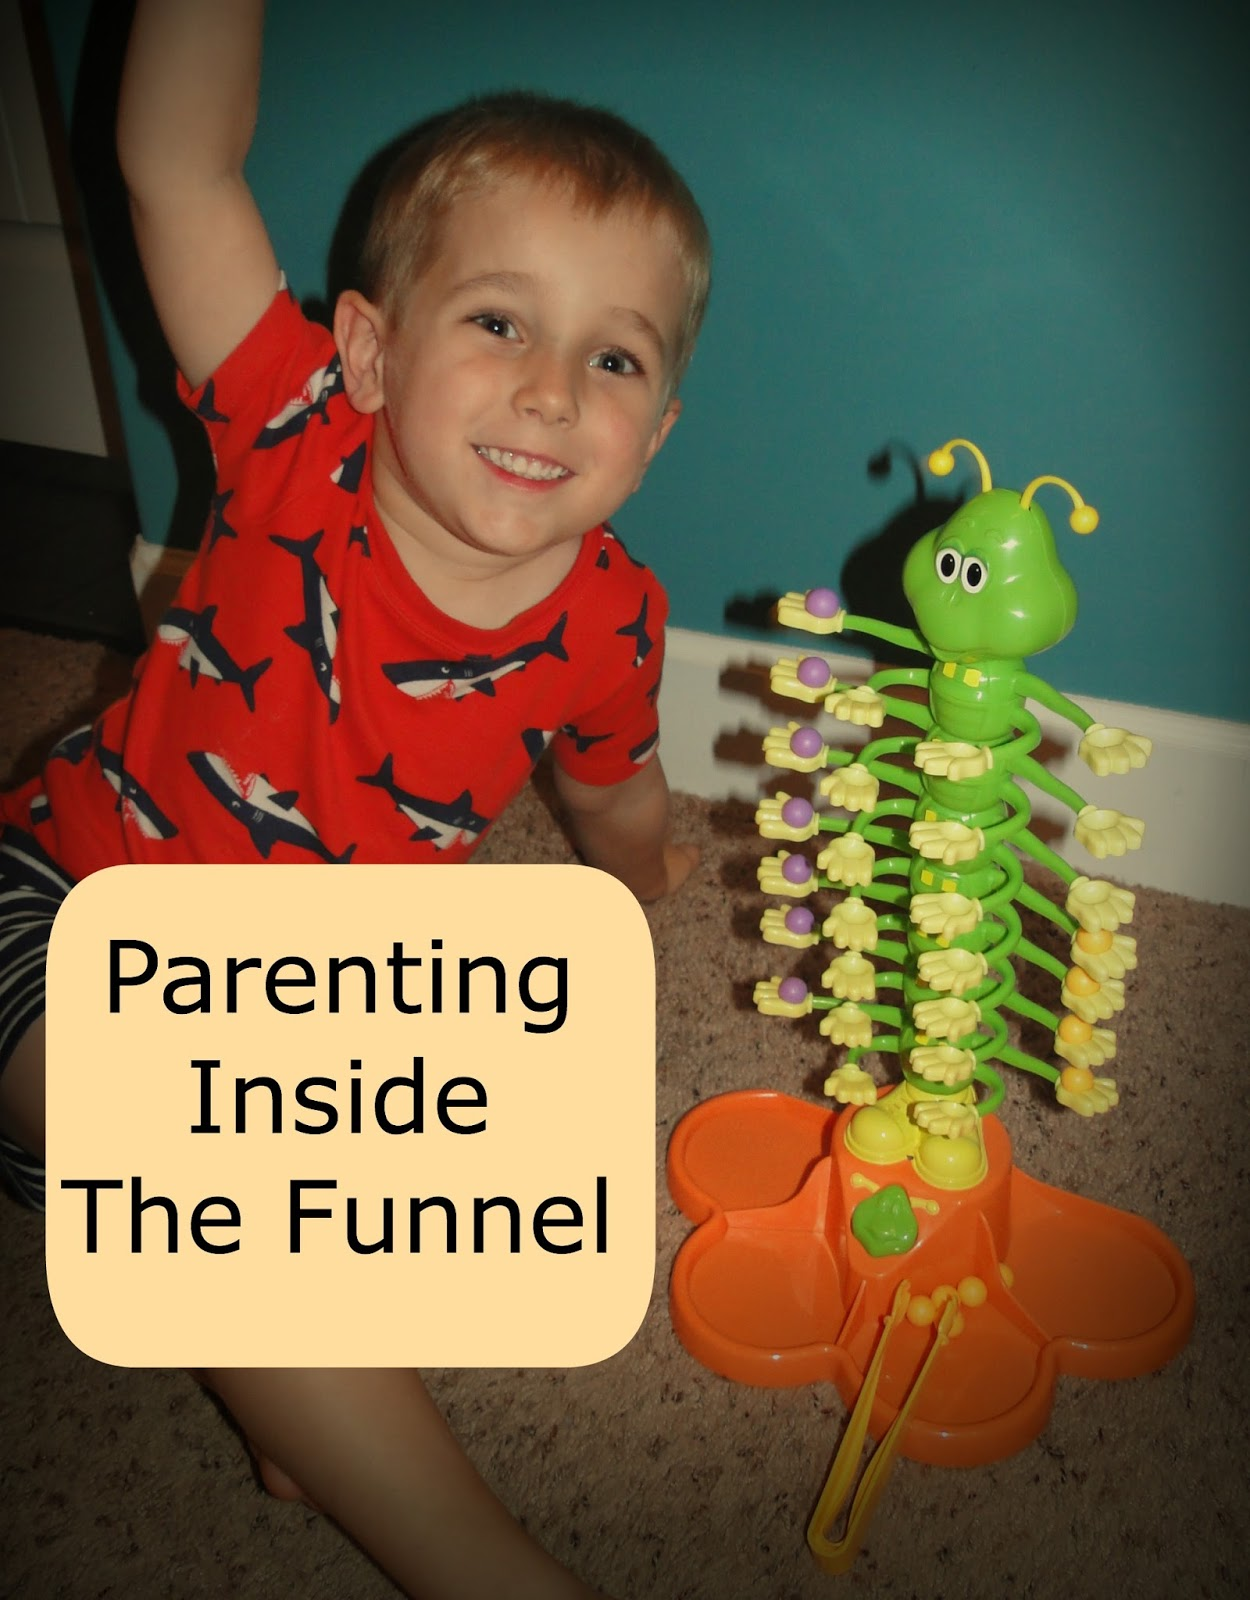 Parenting Inside the Funnel